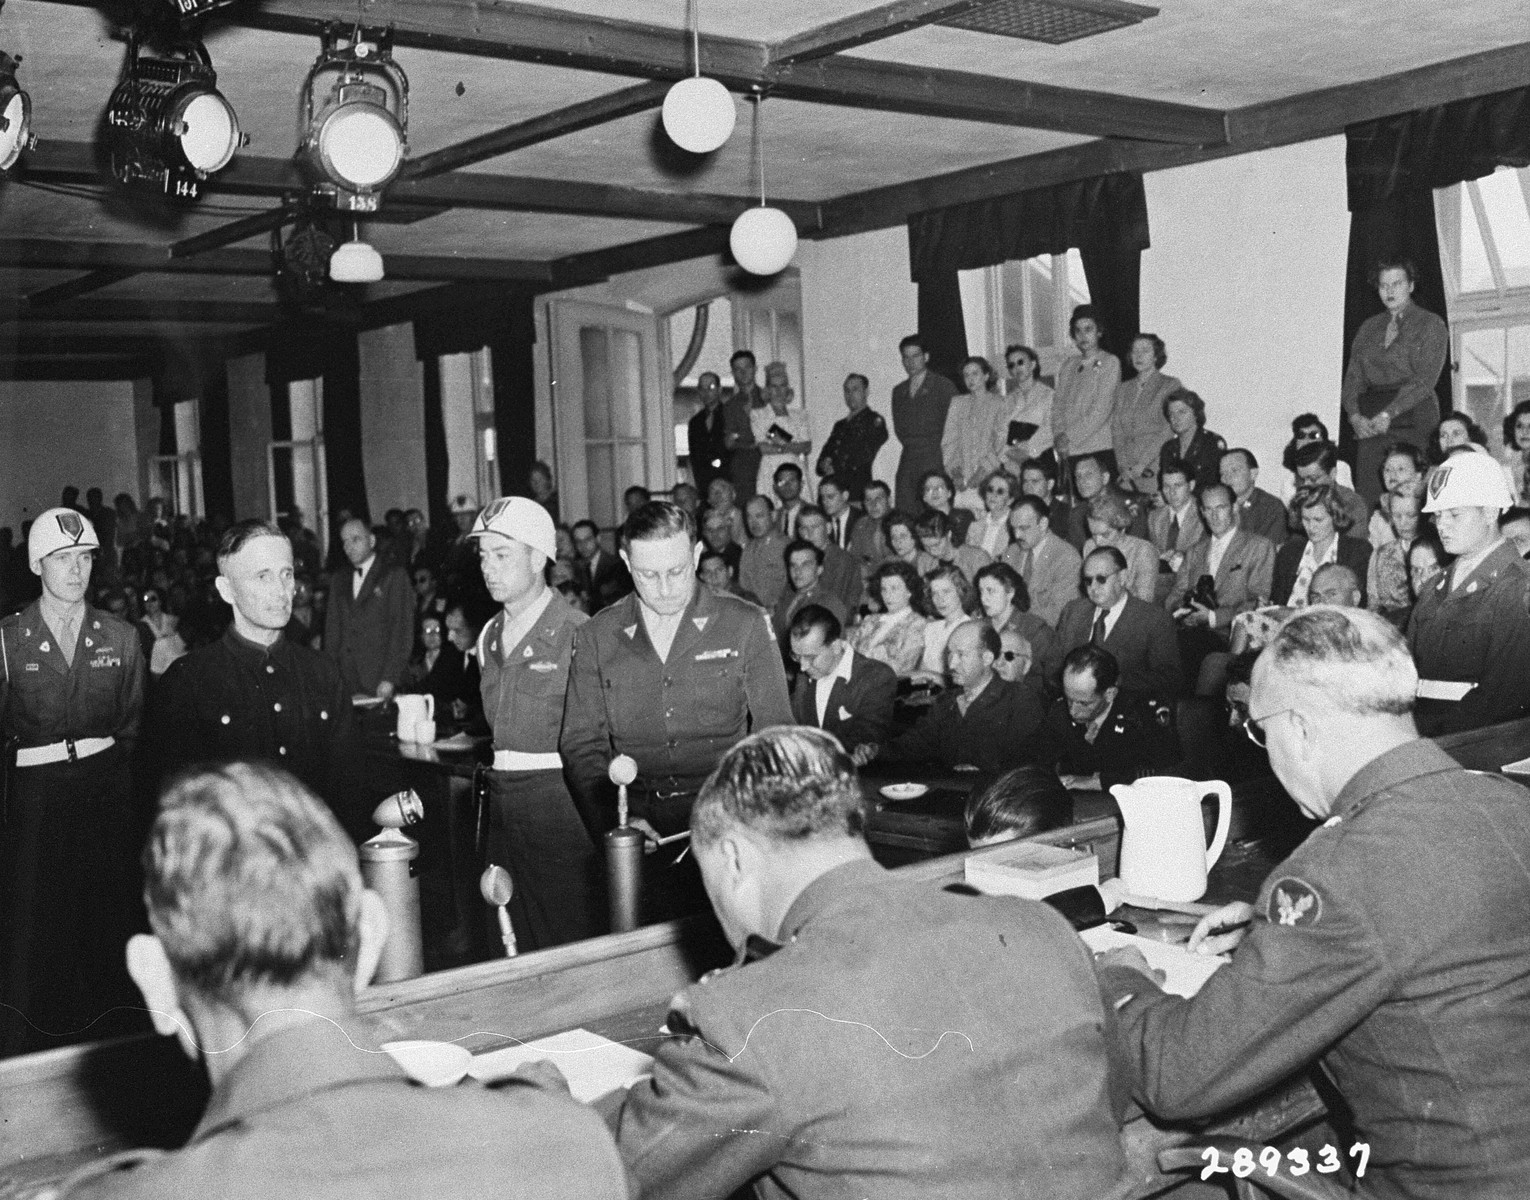 Former SS-Obergruppenfuerher Josias Erbprinz zu Waldeck-Pyrmont is sentenced to life in prison by Brigadier General Emil C. Kiel at the trial of former camp personnel and prisoners from Buchenwald.